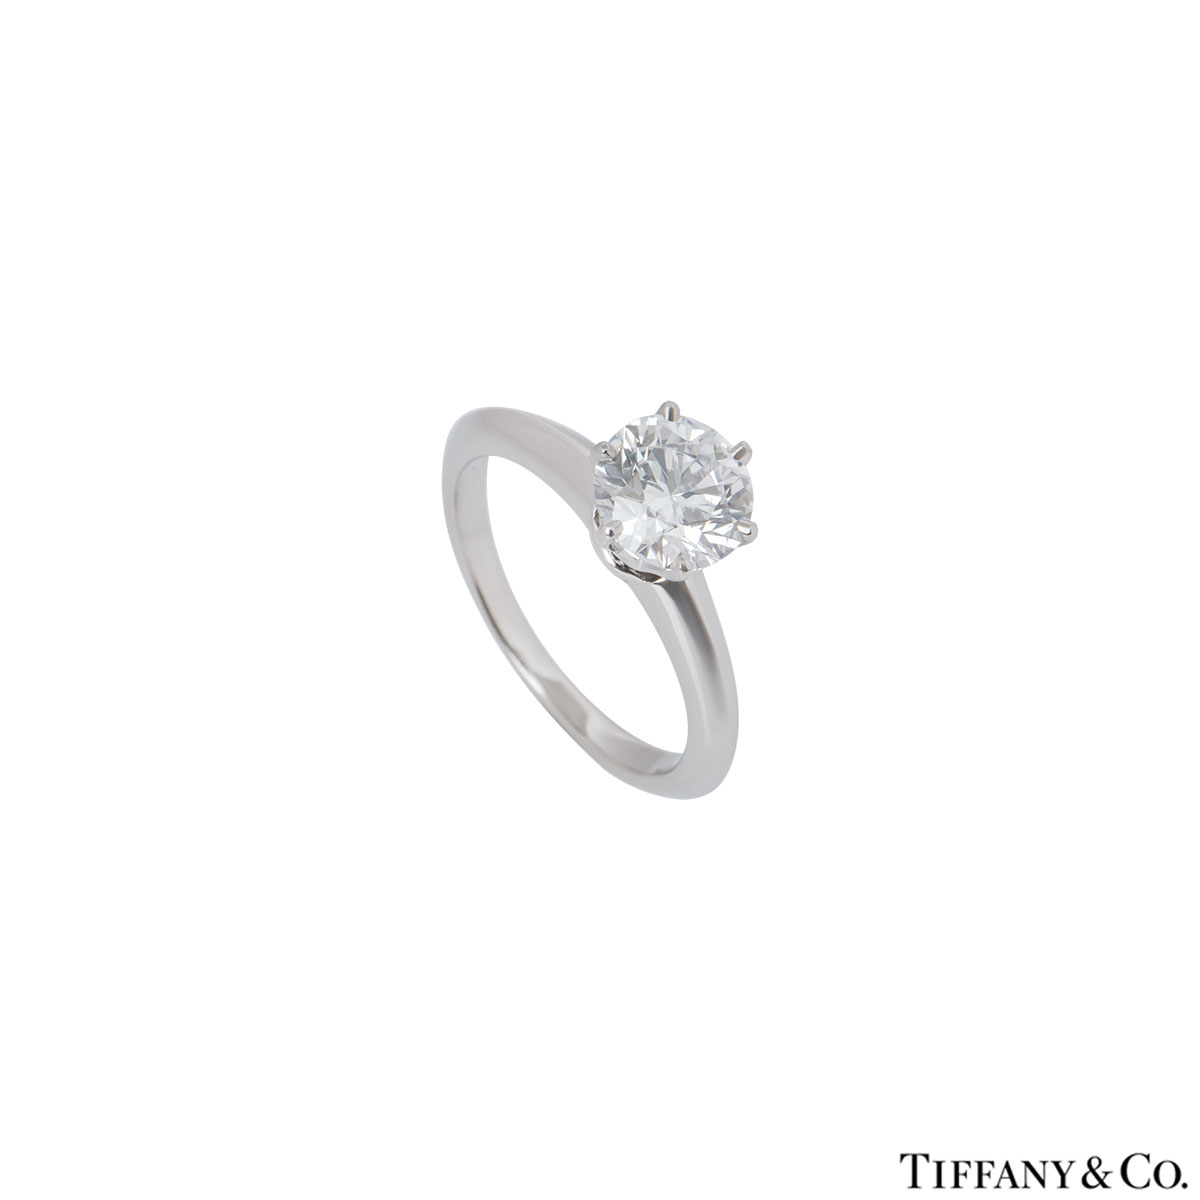 Tiffany & Co. Platinum Diamond Setting Ring 1.22ct D/VS1 XXX